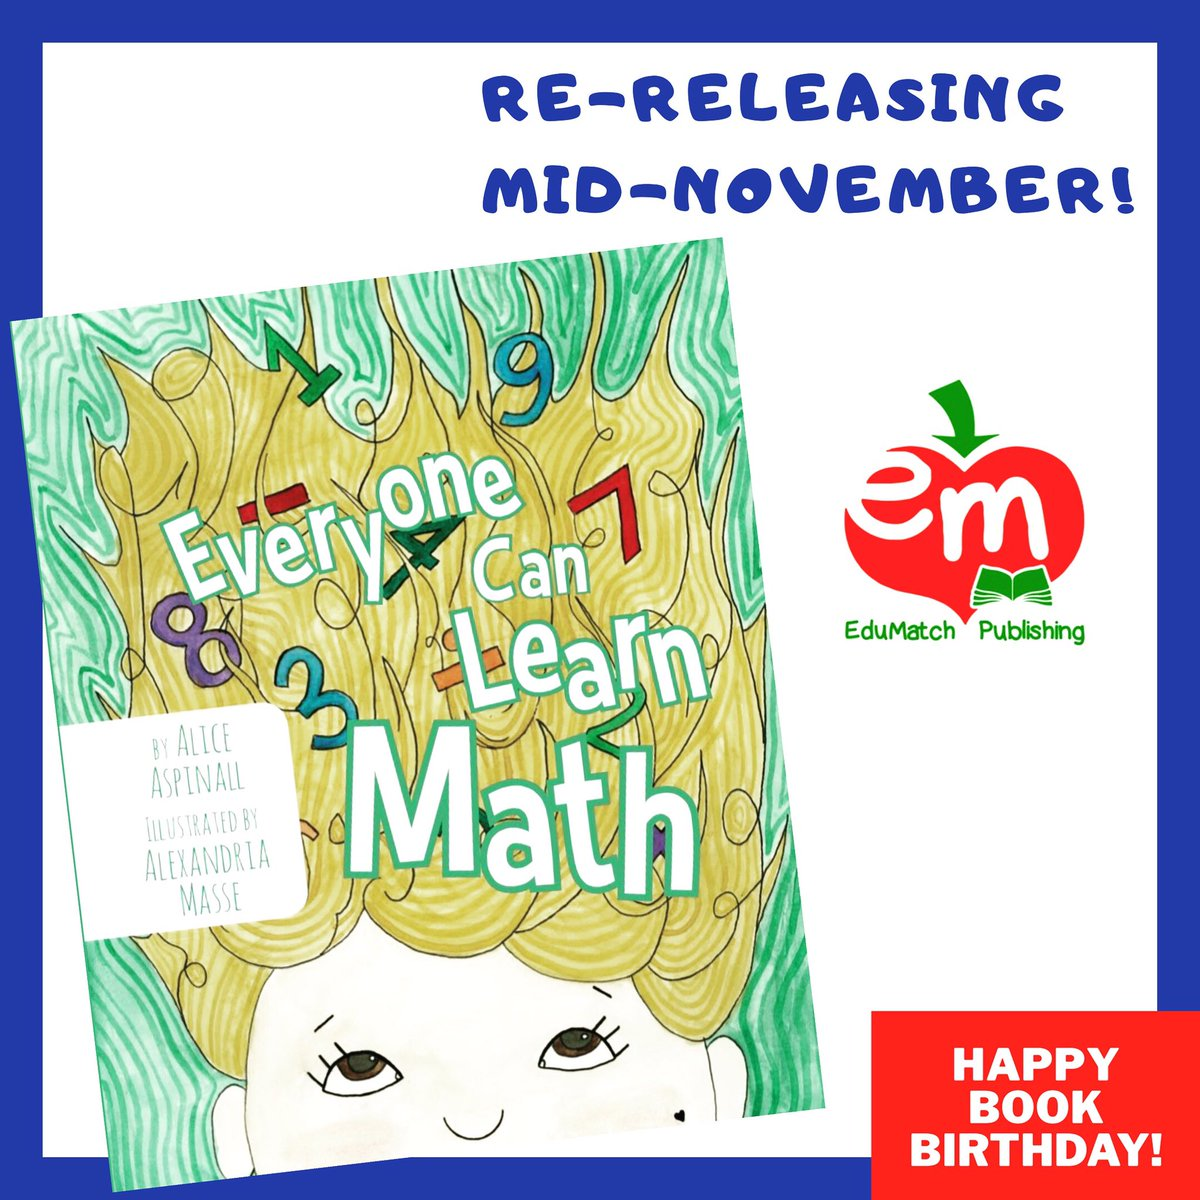 """test Twitter Media - Happy 1 Year Birthday to Everyone Can Learn Math!! One year ago, Everyone Can Learn Math was released - a beautiful picture book about Amy, who thinks she's not a """"math person."""" 1/n https://t.co/rR3pB0sQjl"""